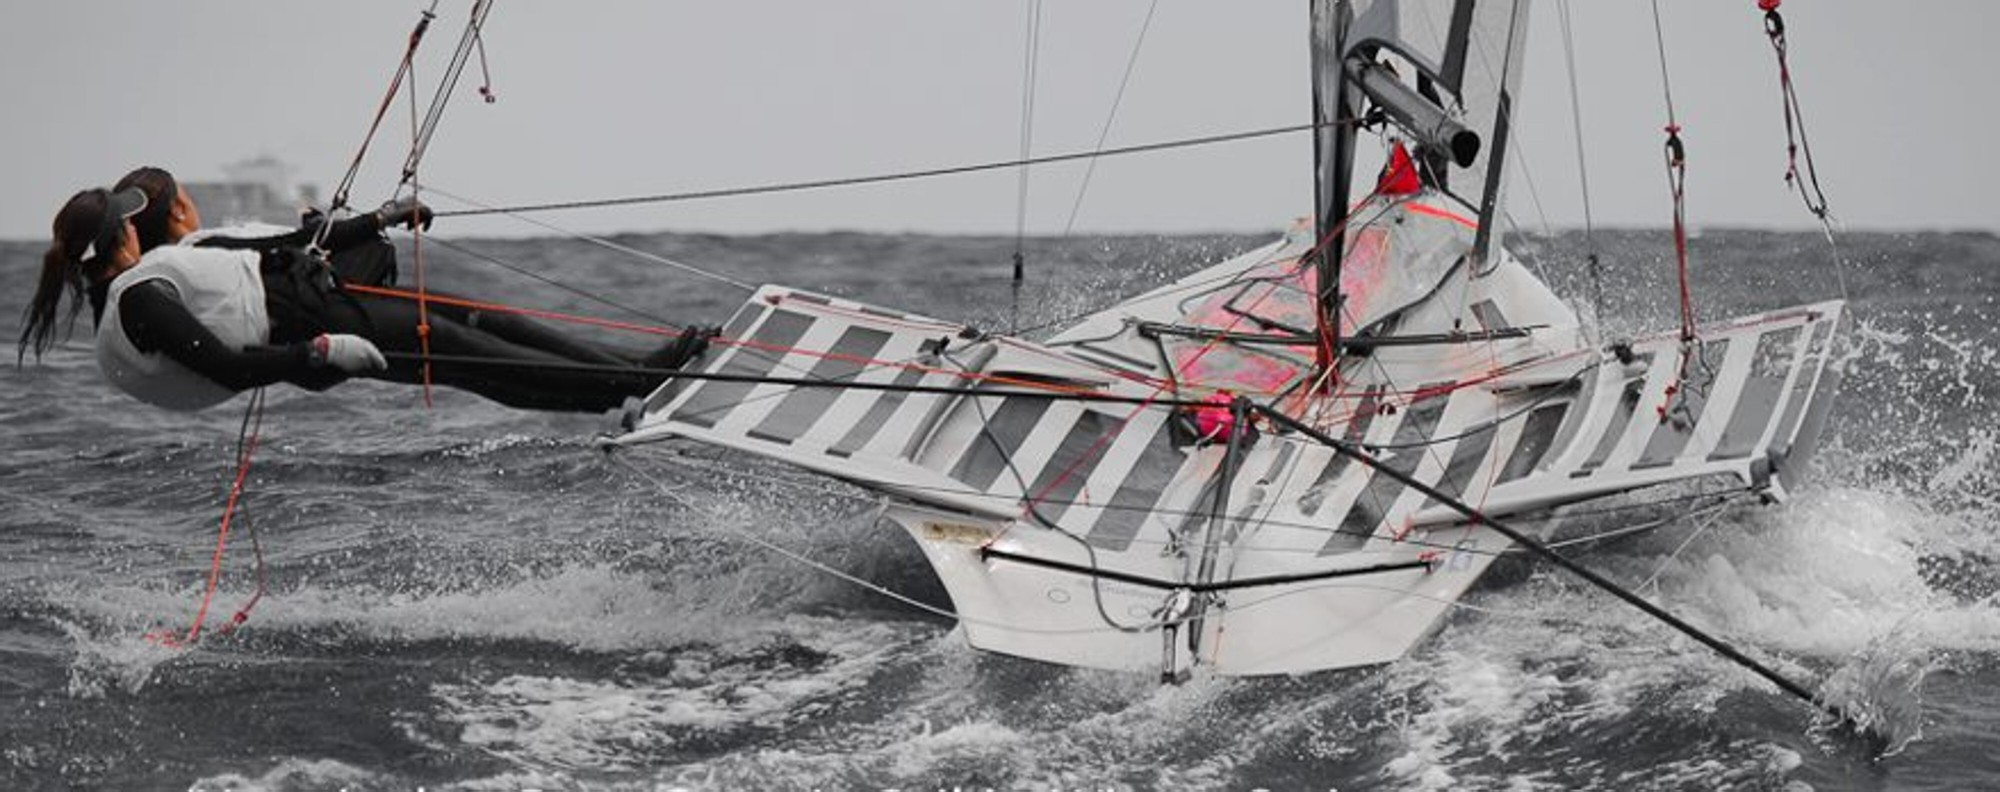 Maria Cantero's extensive experience on fast skiff's is great training to transition to a foiling boat. Photo: Alberto Sanchez